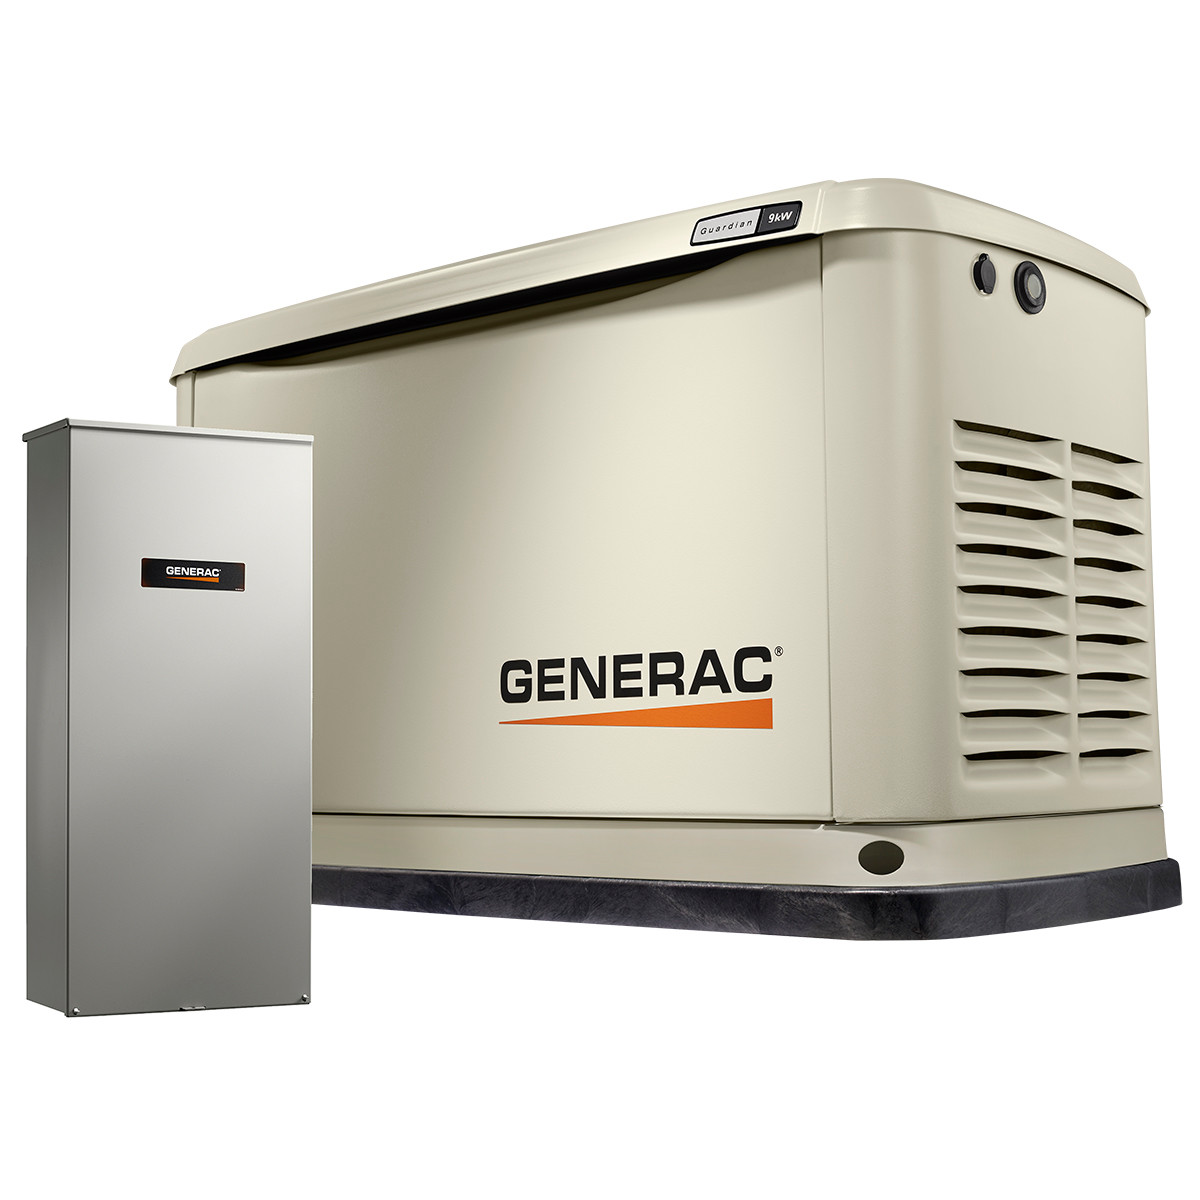 medium resolution of generac 70301 9kw guardian generator with wi fi 100a 16 circuit transfer switch